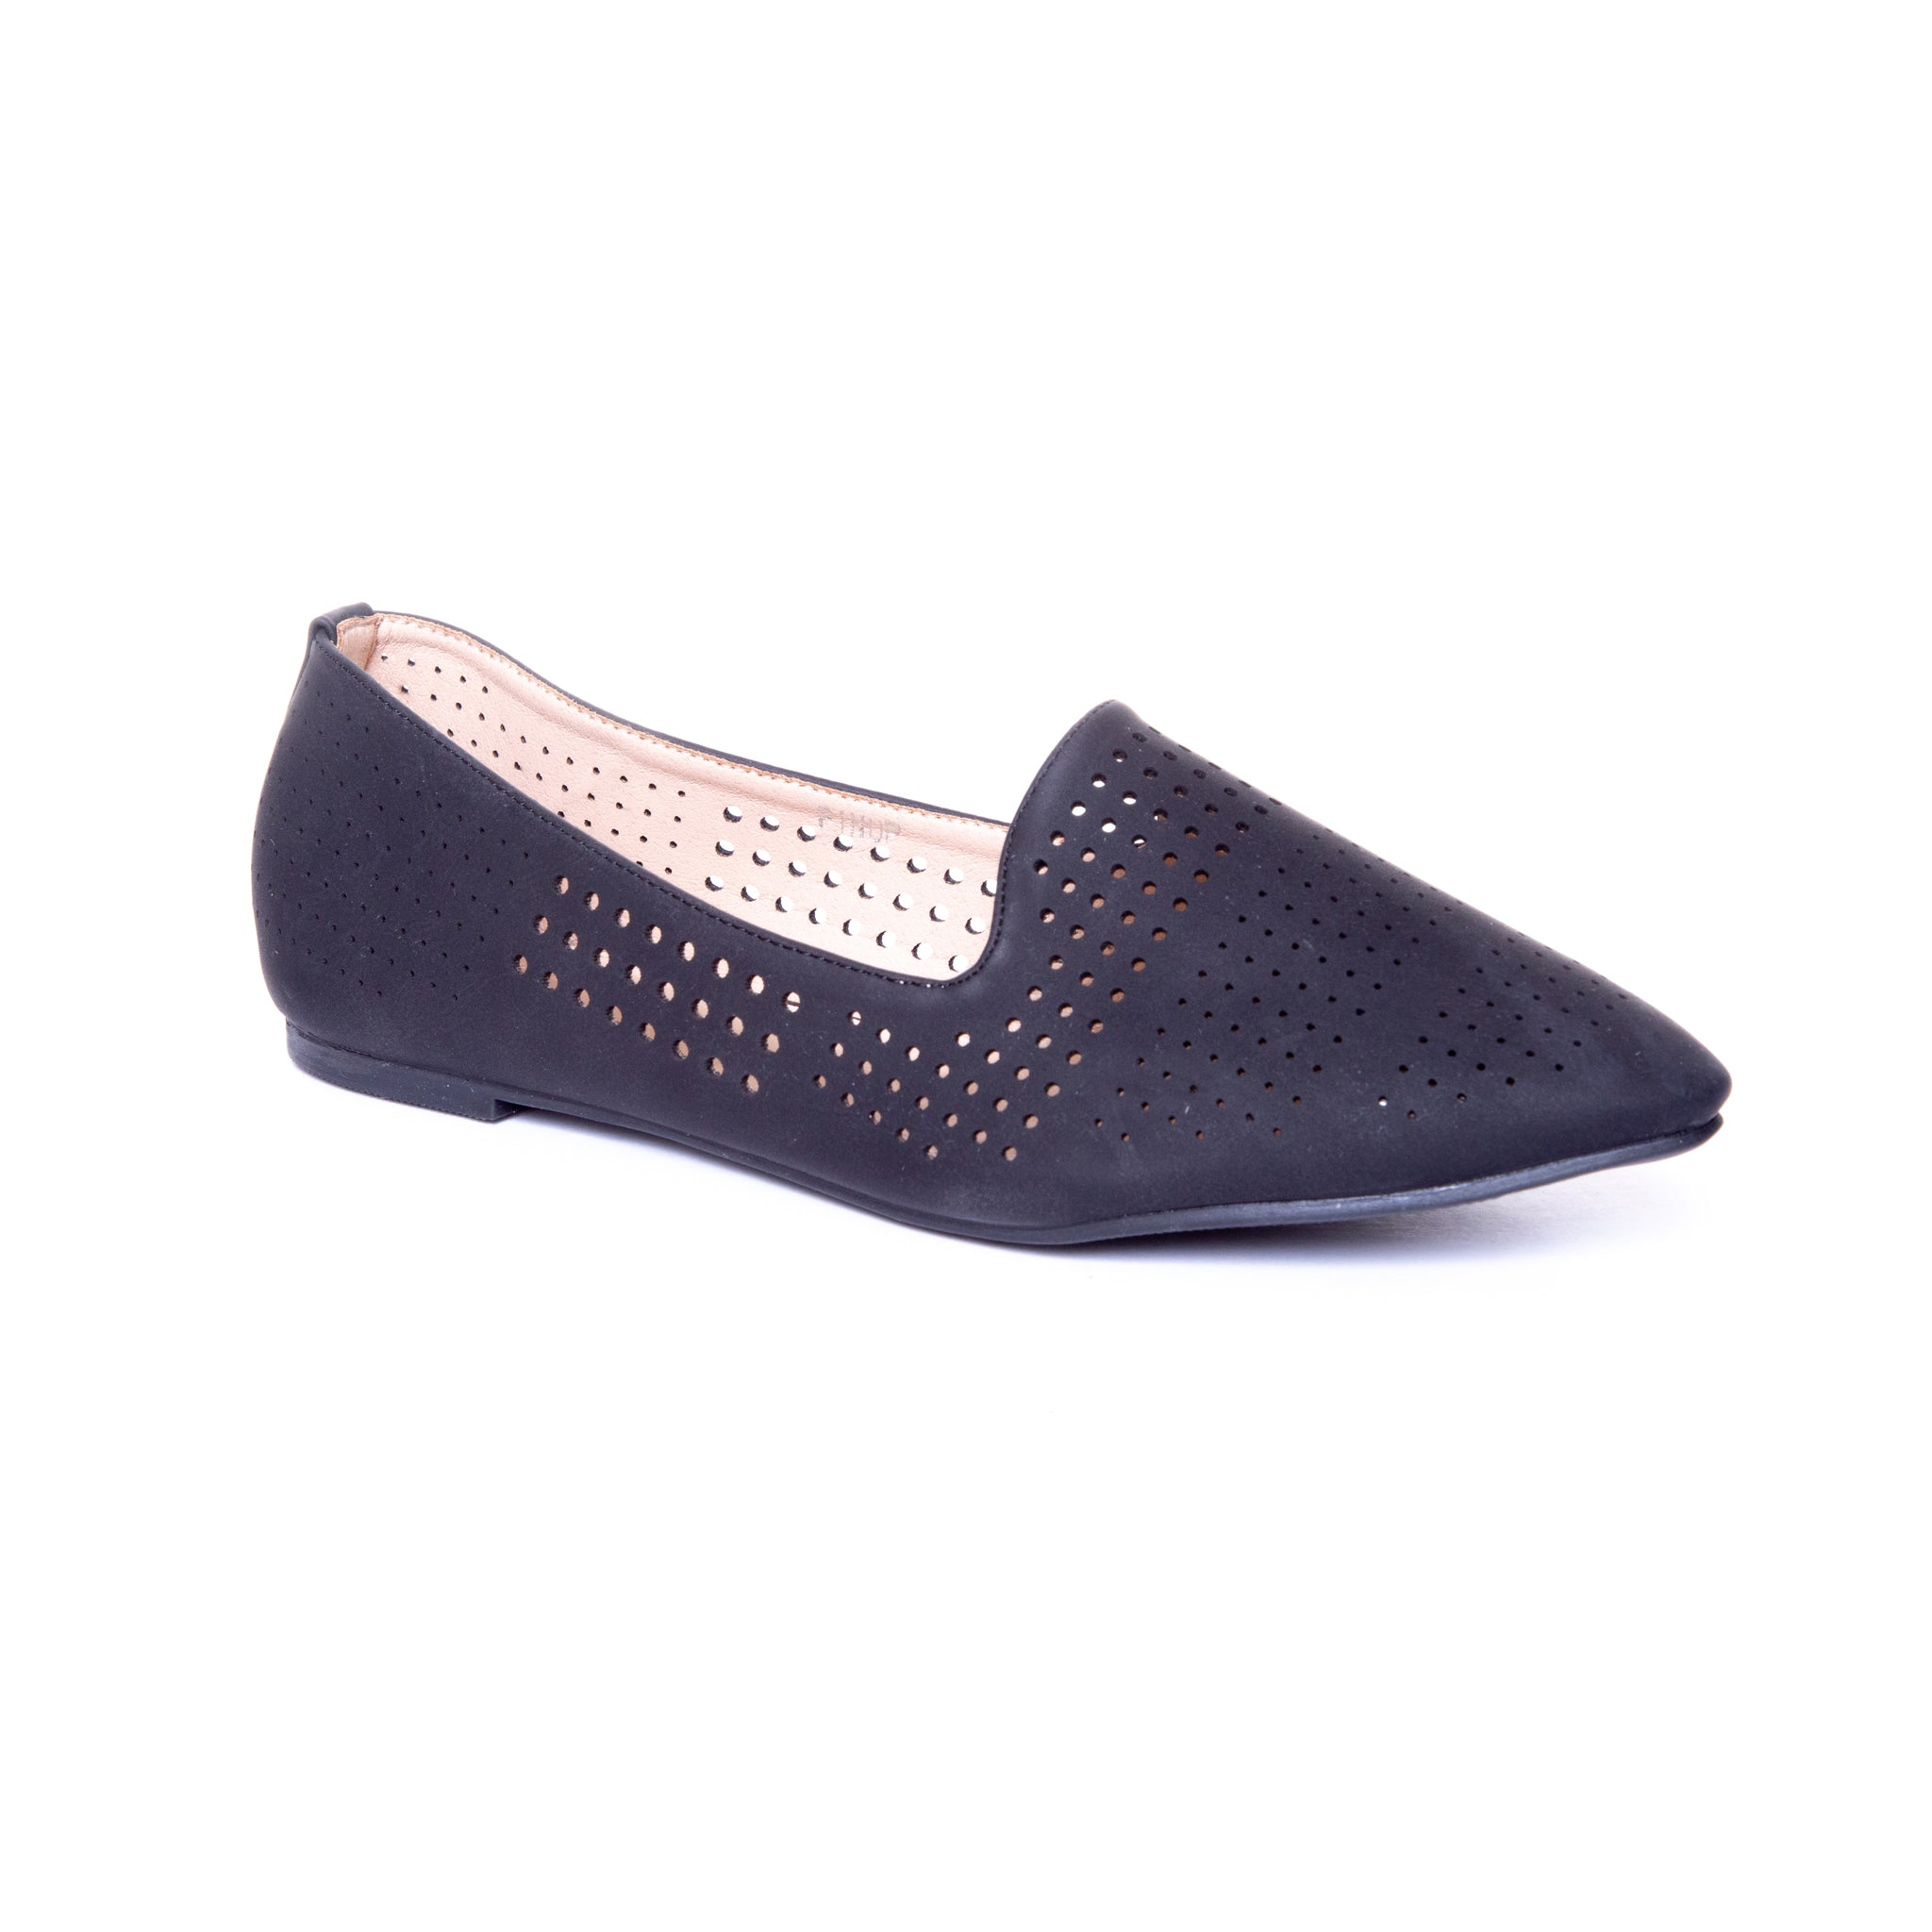 Pinup by Dolce Nome | Pointed Toe Ballet Flats in Black (main view)